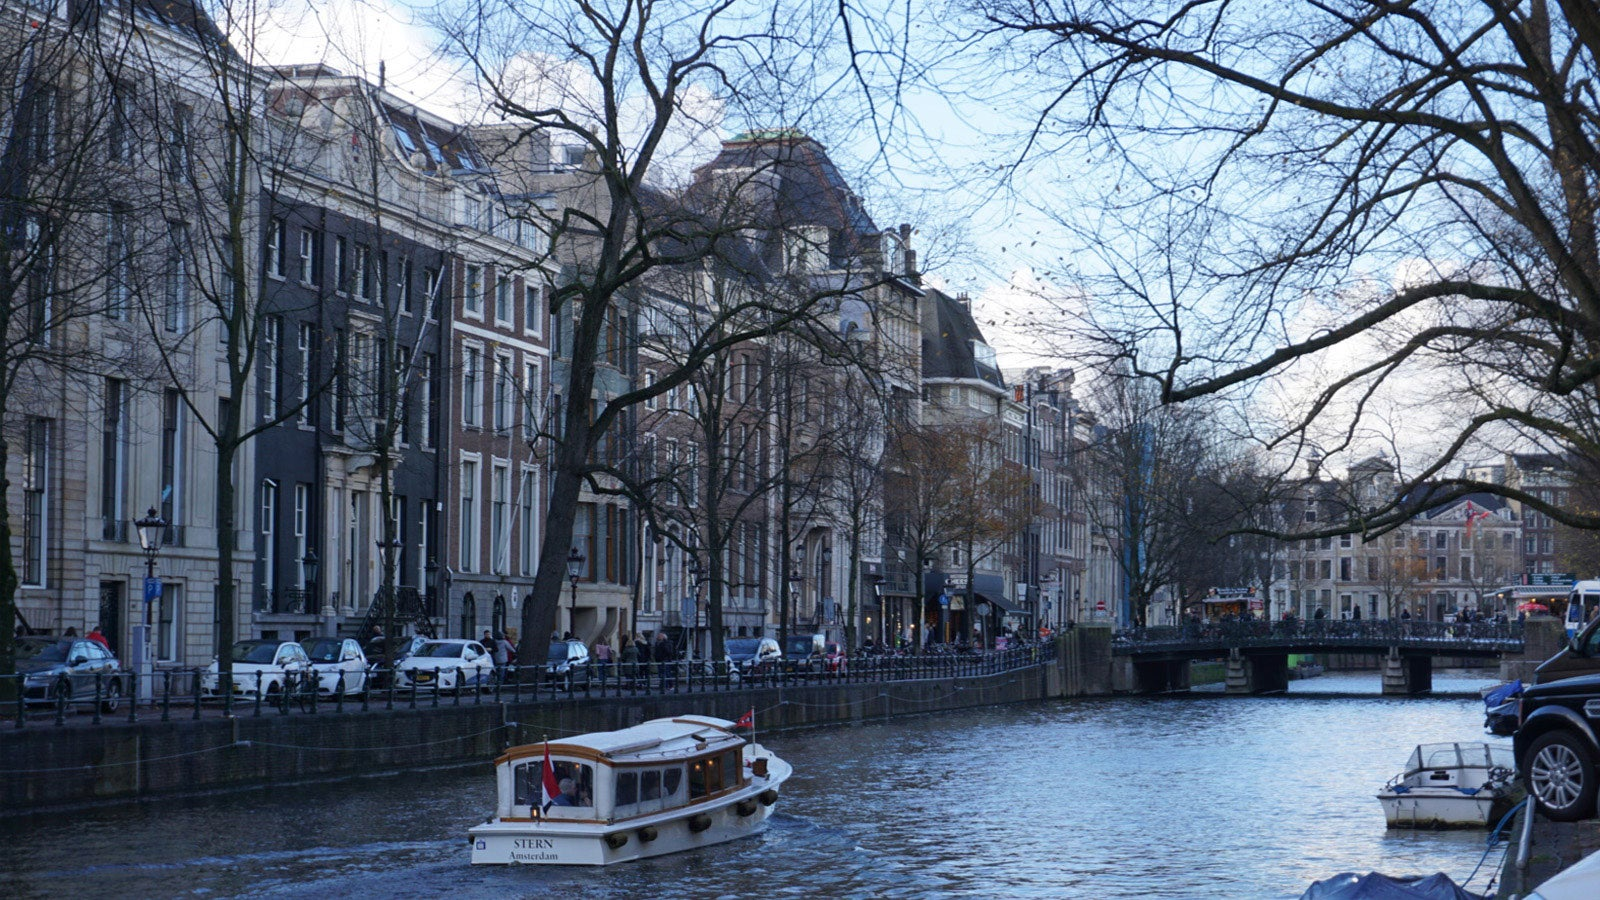 Gouden Bocht (The Golden Bend) Amsterdam - showing the canal and beautiful buildings on either side, in winter